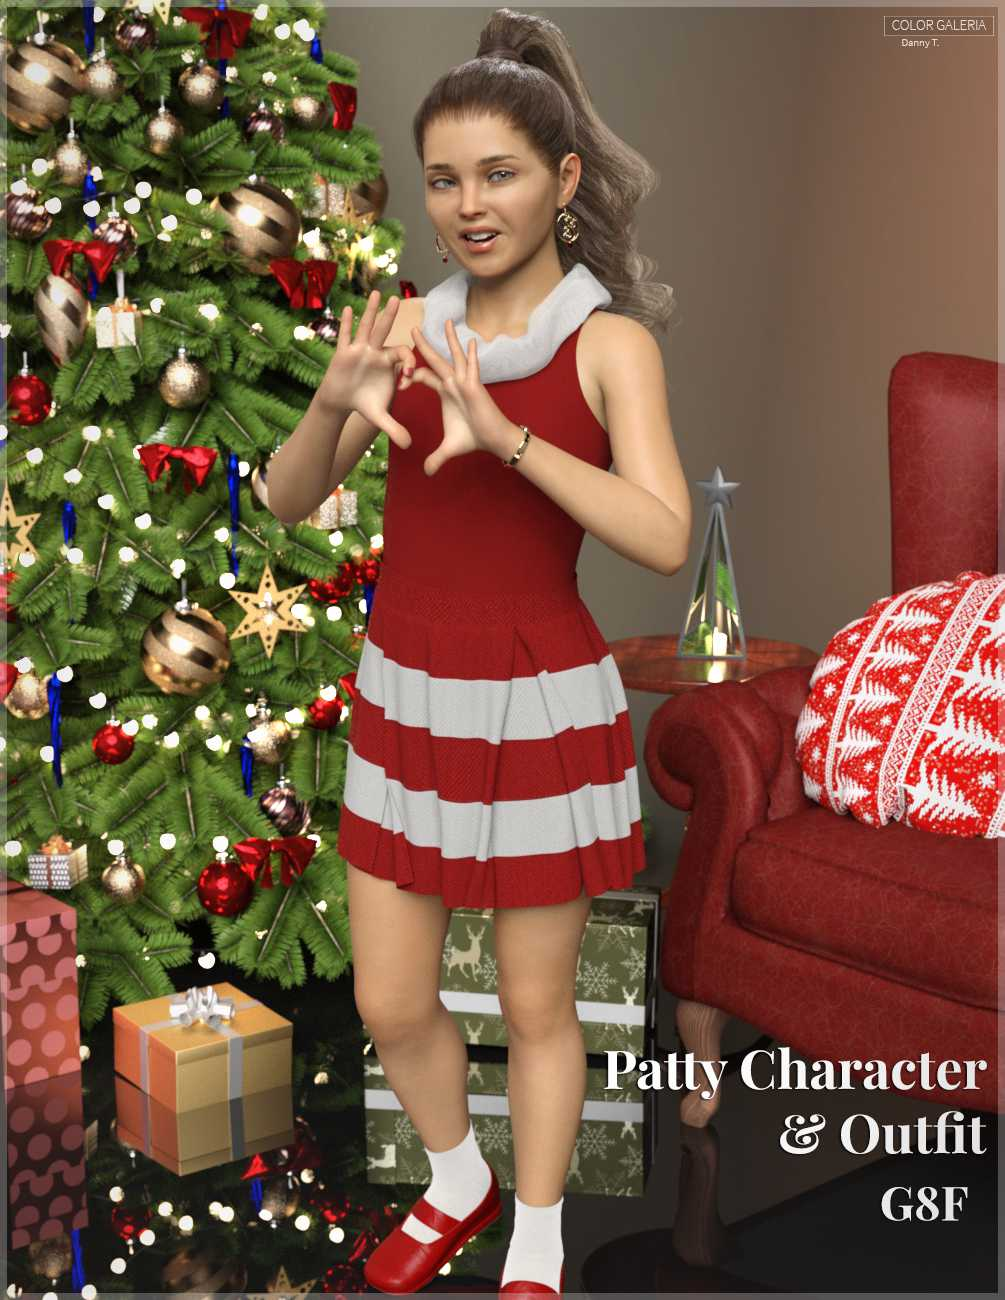 Patty Character & Outfit for Genesis 8 Female